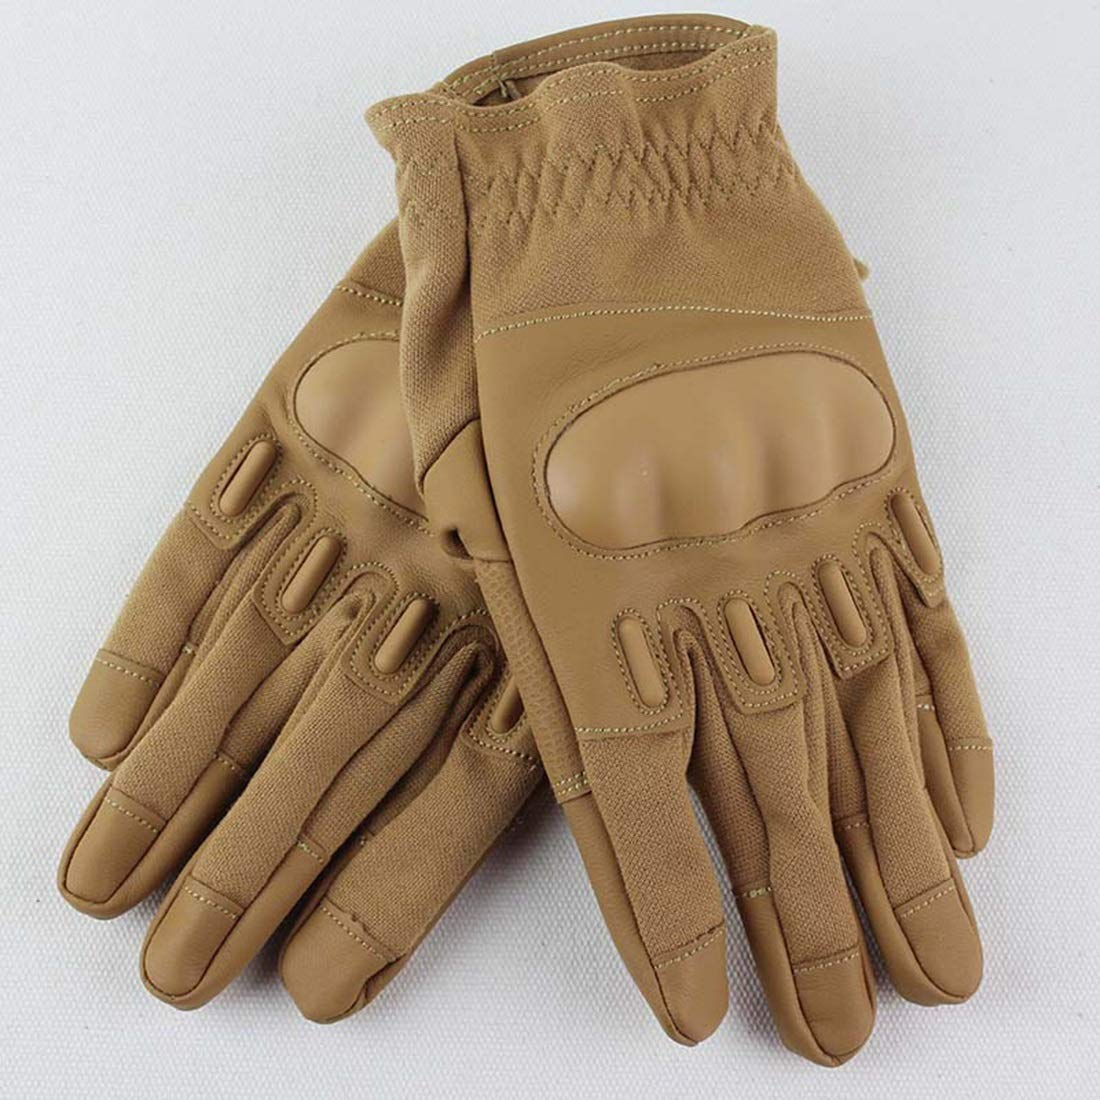 Carriemeow Tactical Full Finger Gloves Special Forces Tactical Gloves Outdoor Riding Sports Tactical Training Gloves